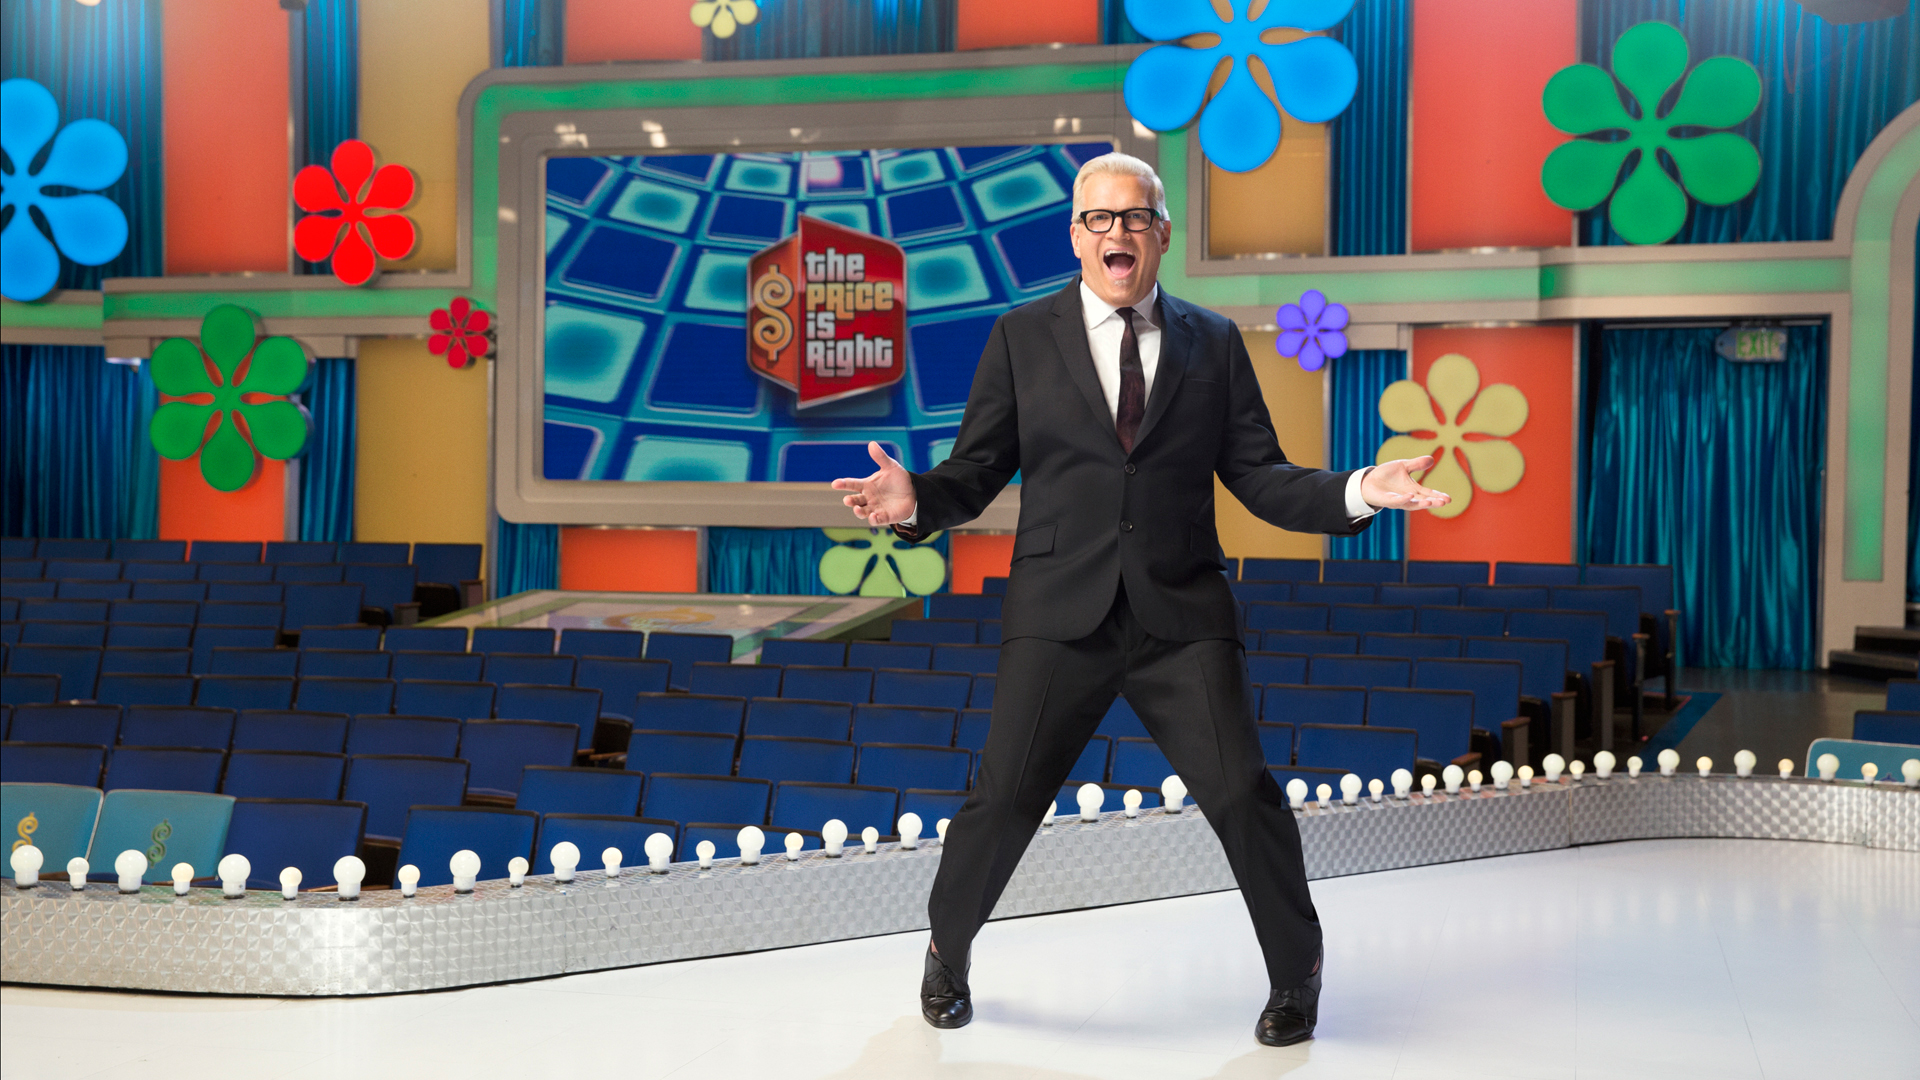 The price is always right, especially after five decades. Come on down!